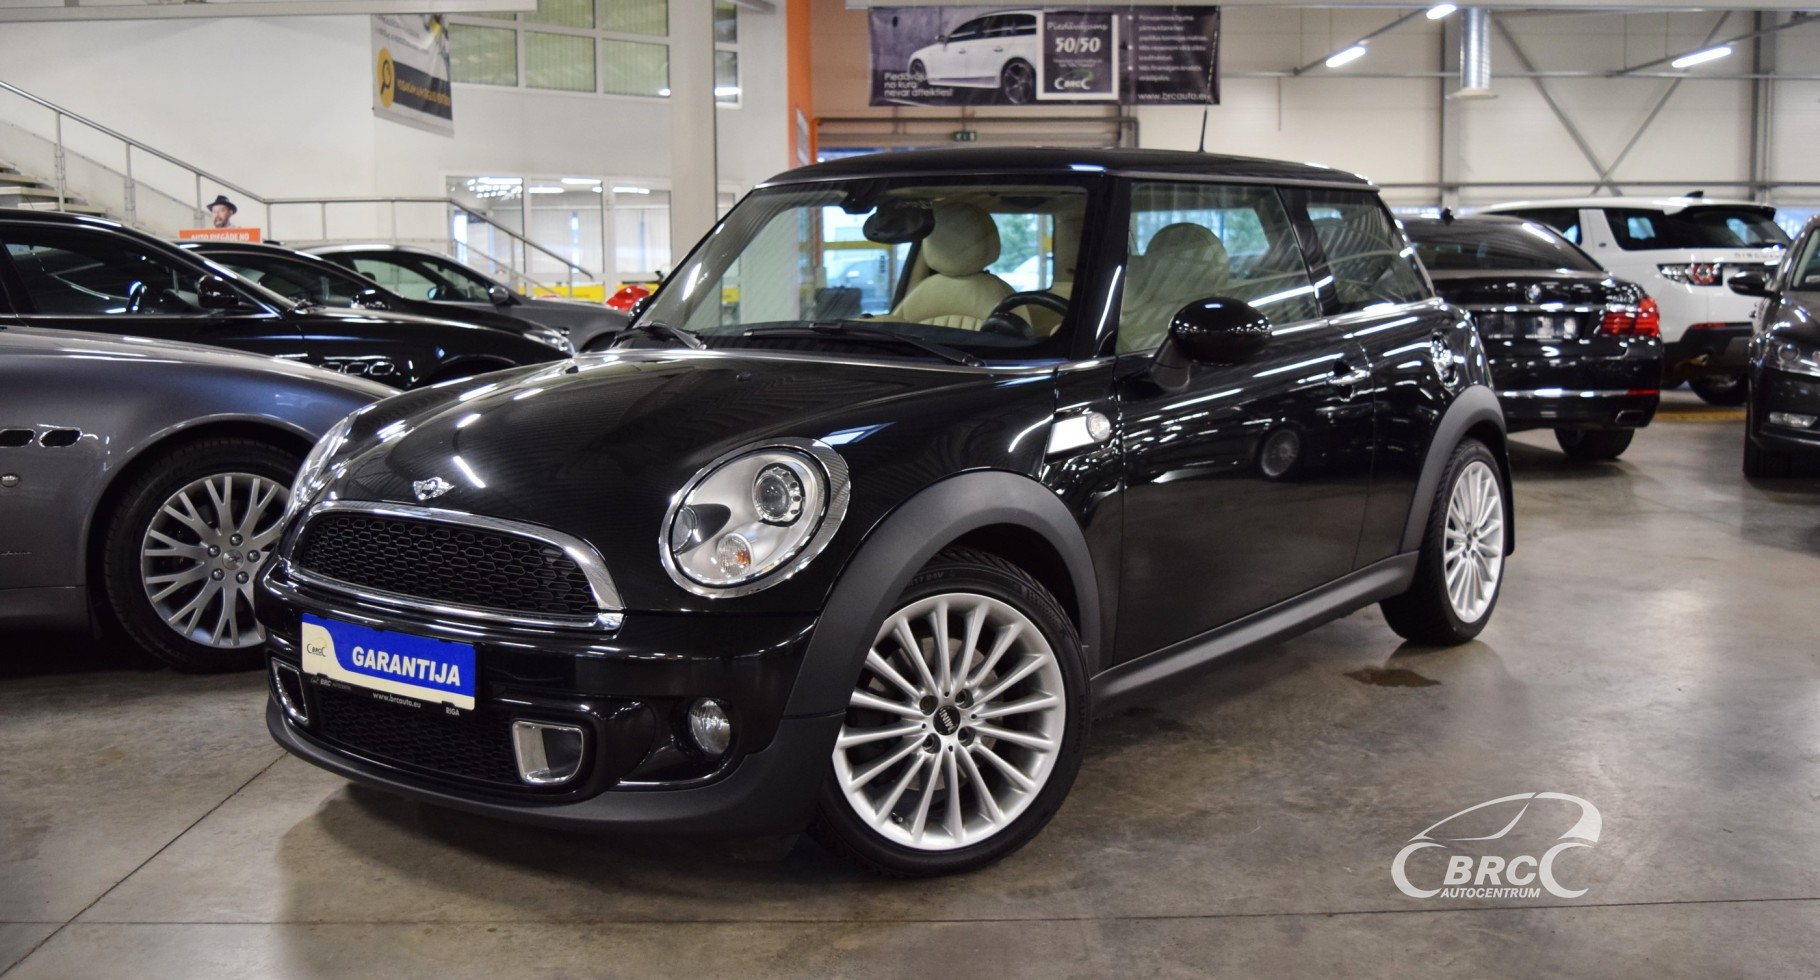 Mini Cooper S Goodwood 1 of 1000